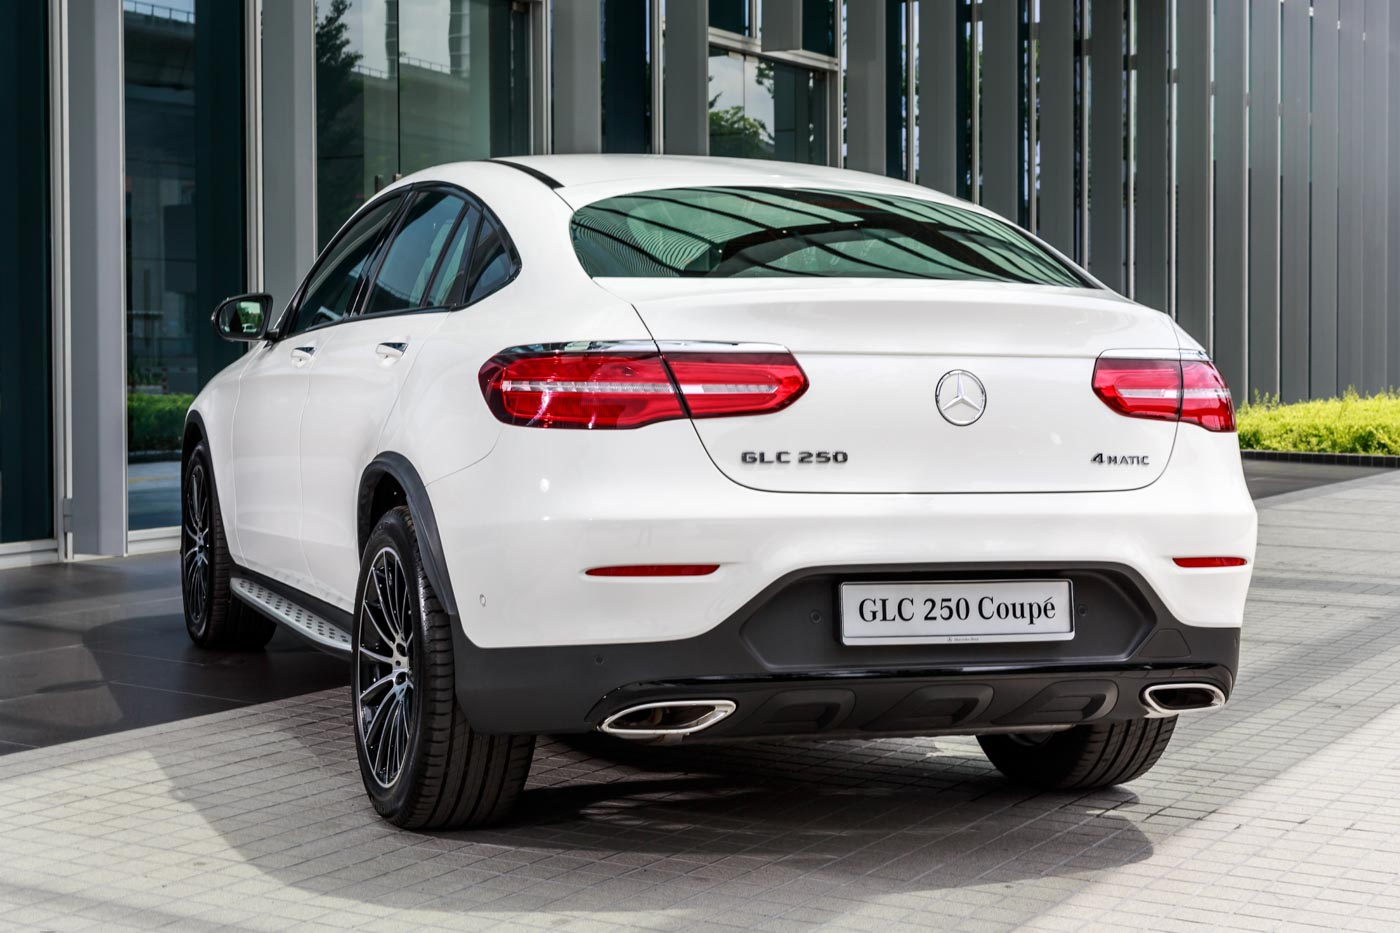 mercedes-benz glc 250 4matic coupé launched, all yours for rm424k